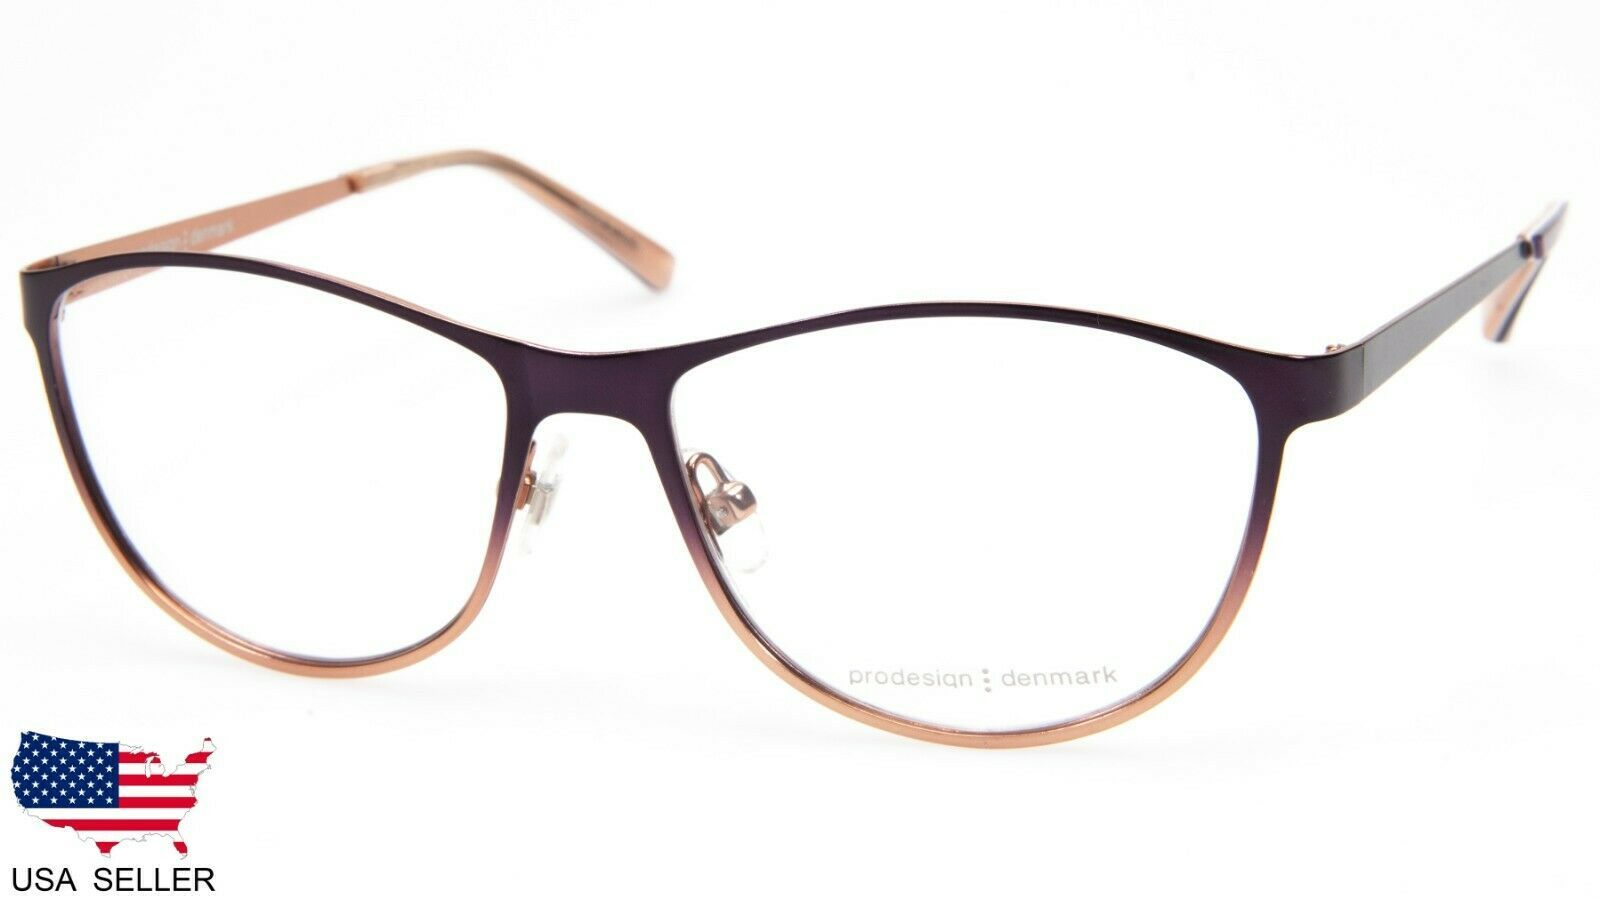 NEW PRODESIGN DENMARK 1260 c.3941 AUBERGINE EYEGLASSES FRAME 54-15-135 B40 Japan